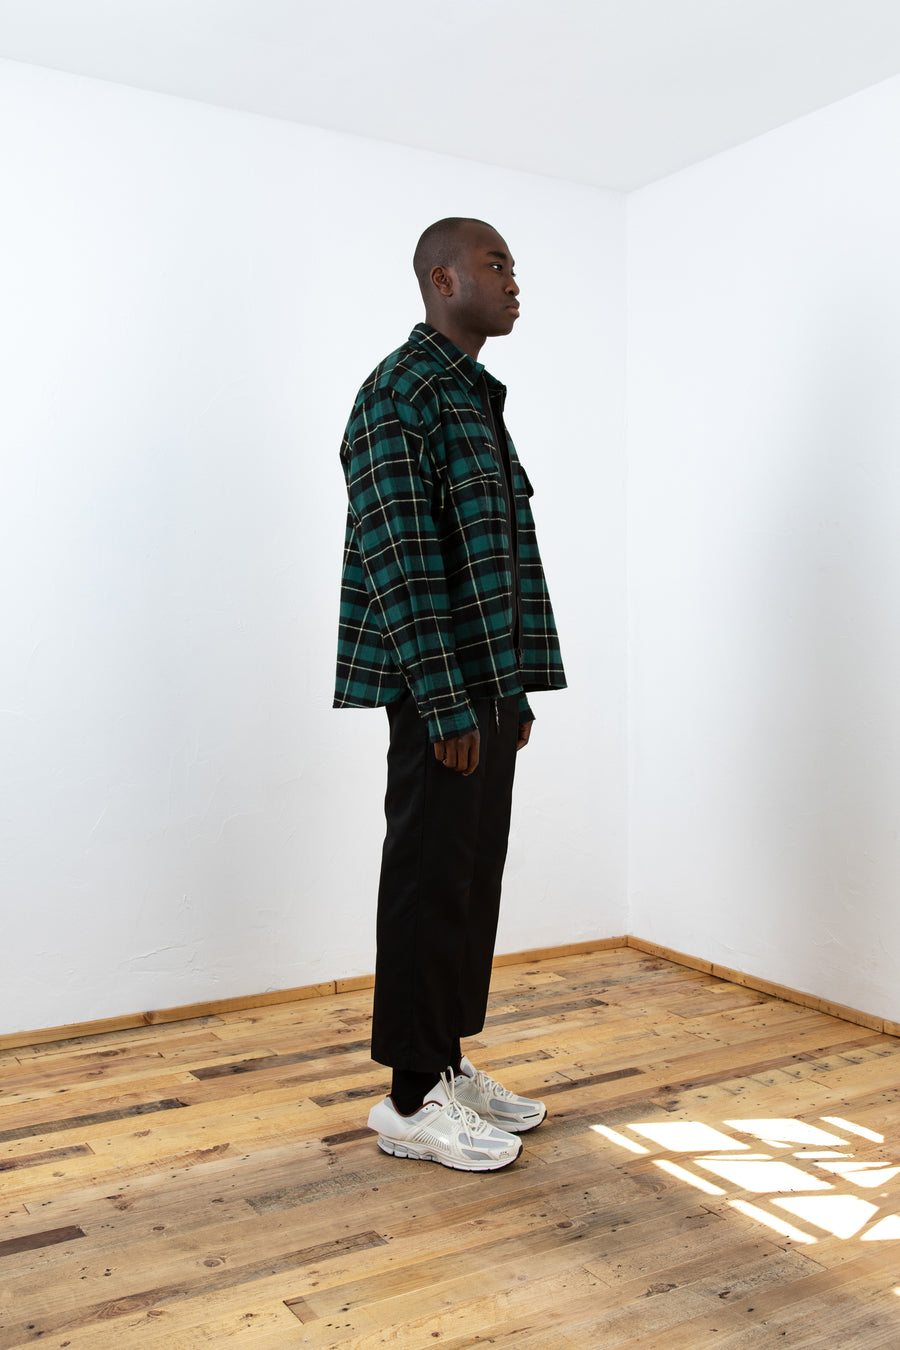 Flannel Zipper V2 GR